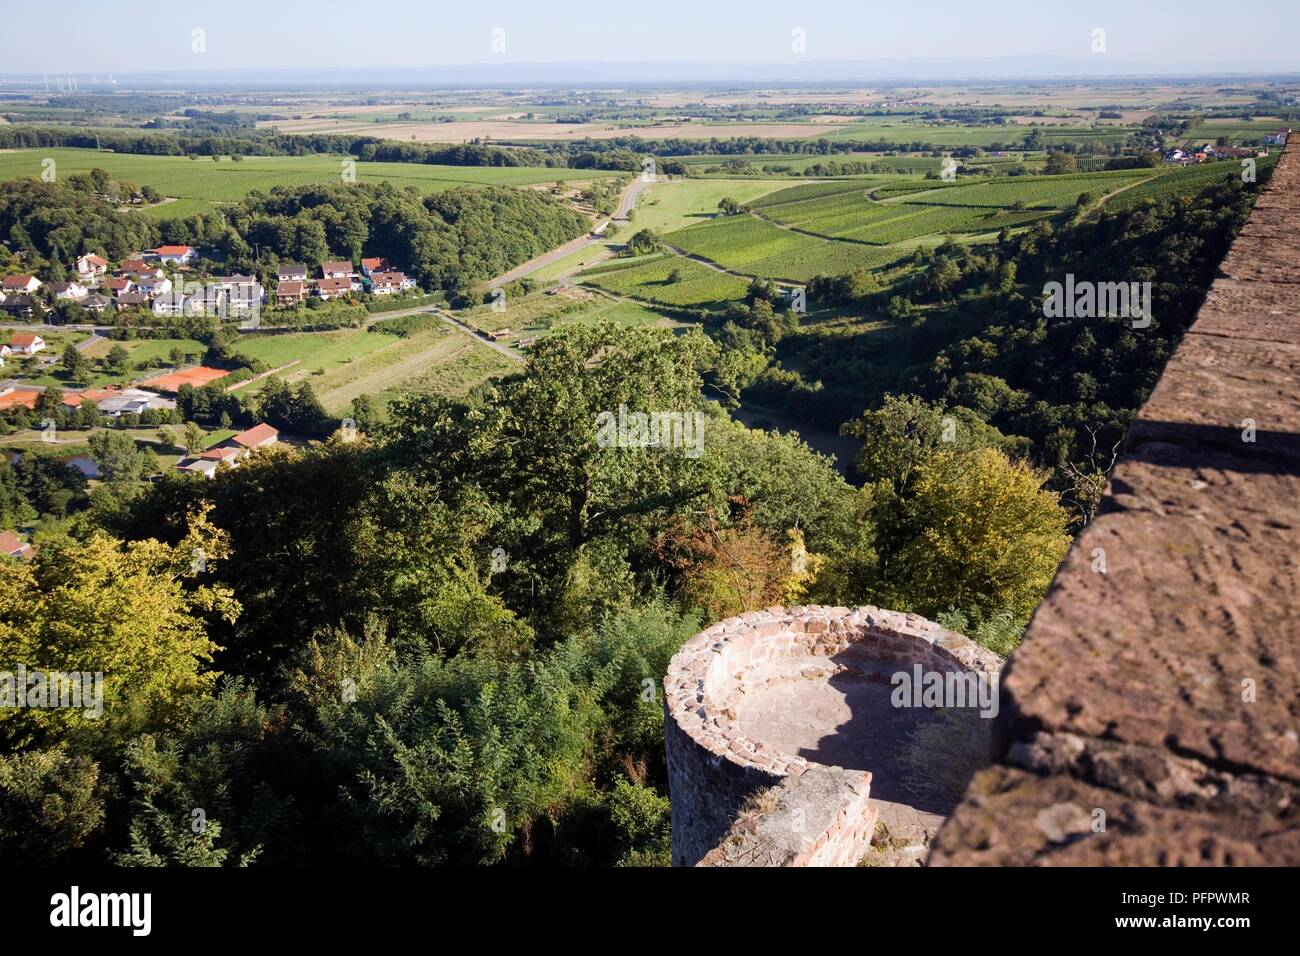 Germany, Rhineland-Palatinate (Rheinland-Pfalz) state, Klingenmunster town, Burg Landeck (Landeck Castle), view from castle ramparts Stock Photo